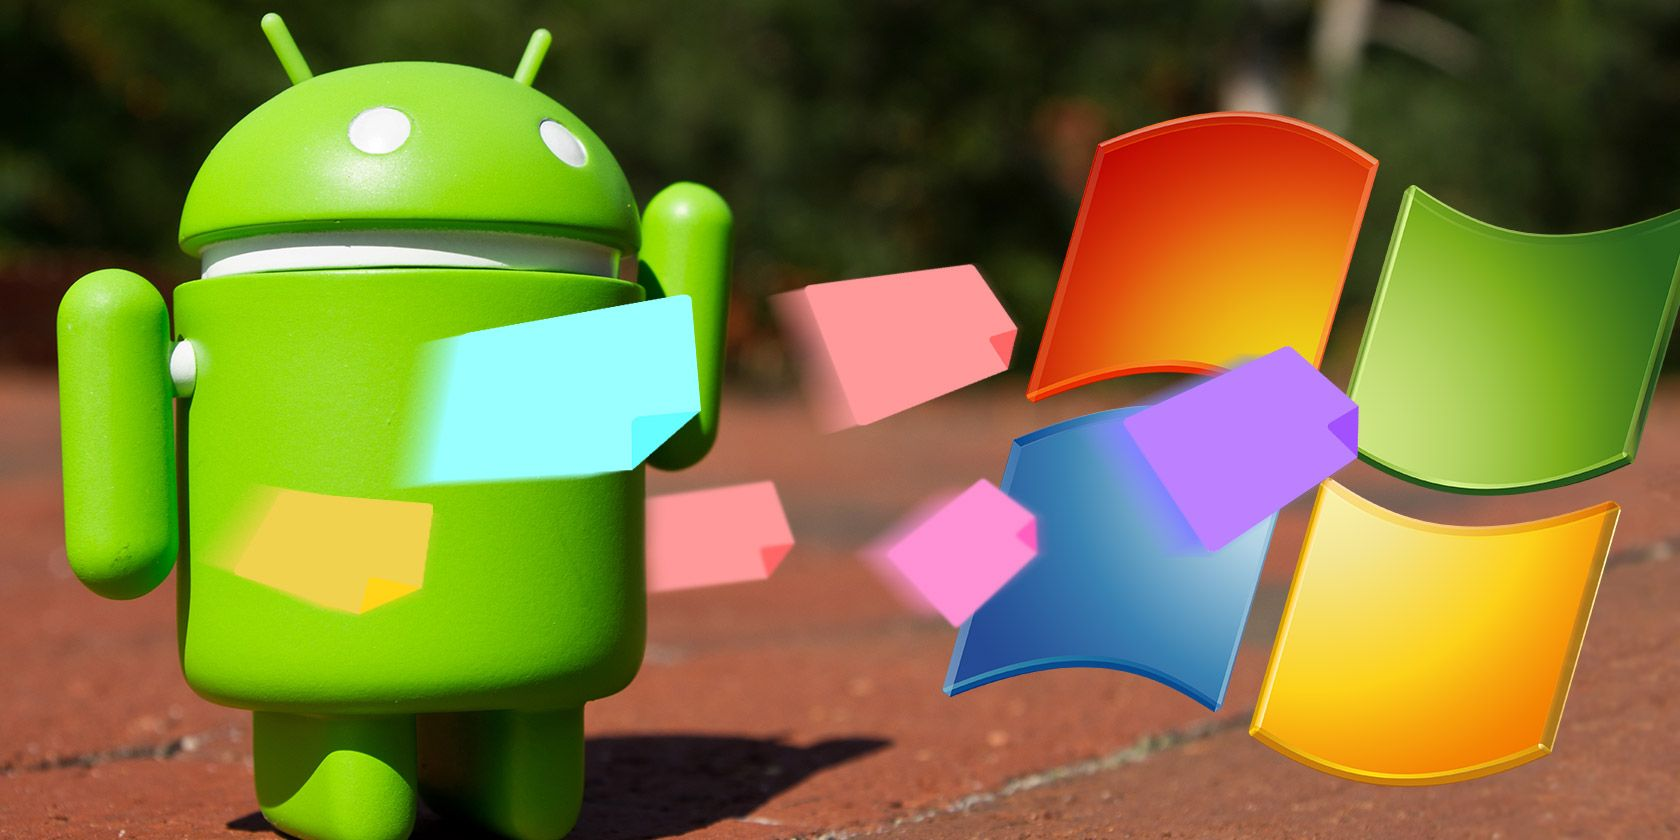 How to transfer files from android to pc 7 methods in